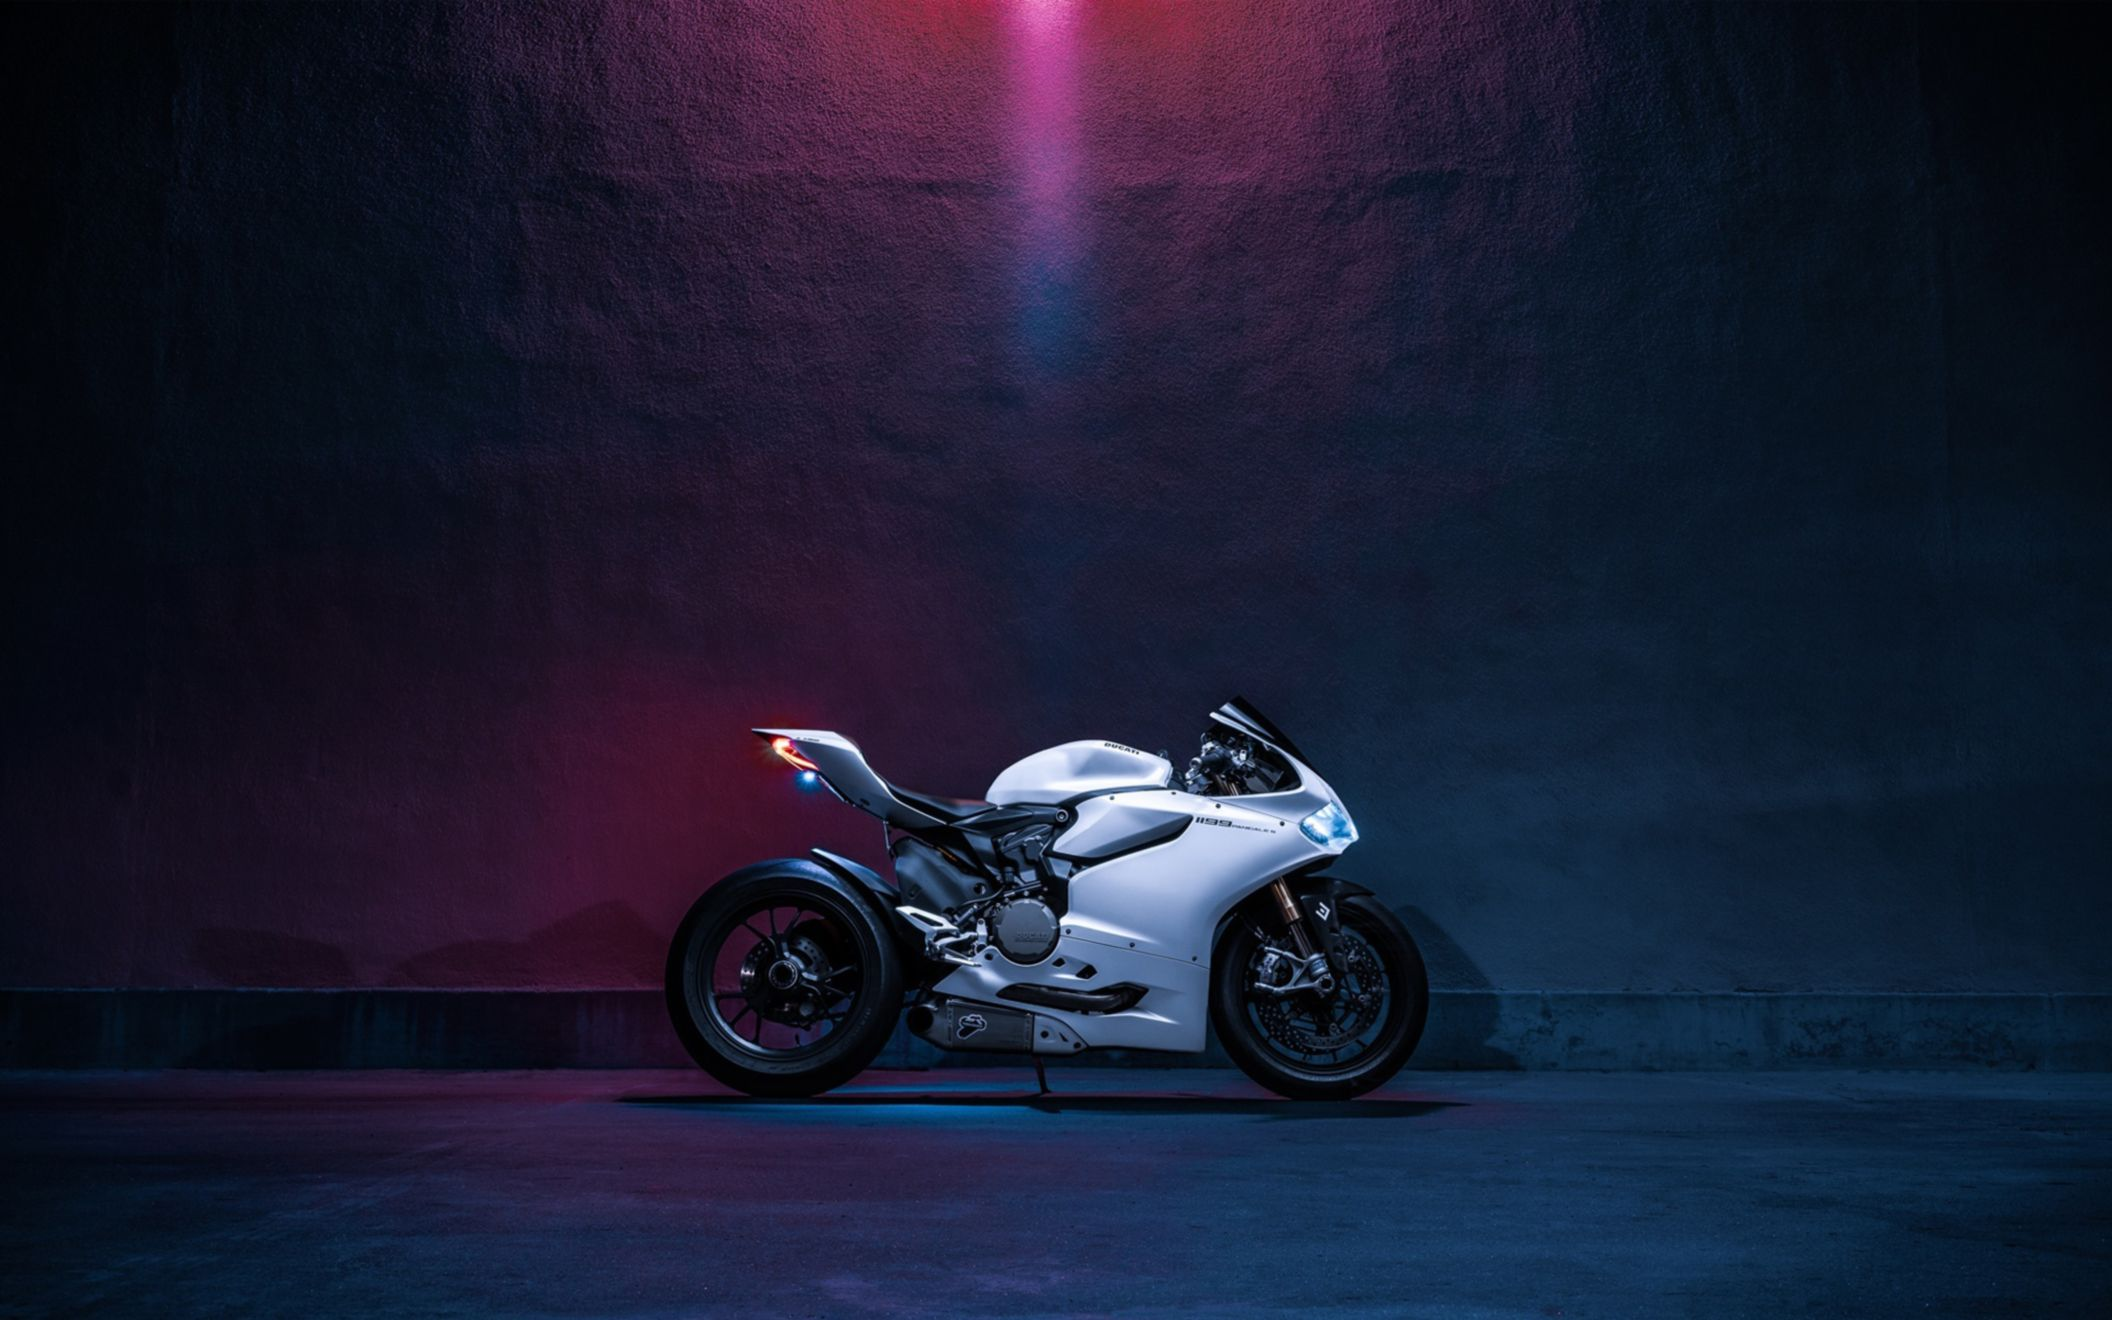 Download free HD Ducati 1199 Panigale S Bike Wide Wallpaper, image